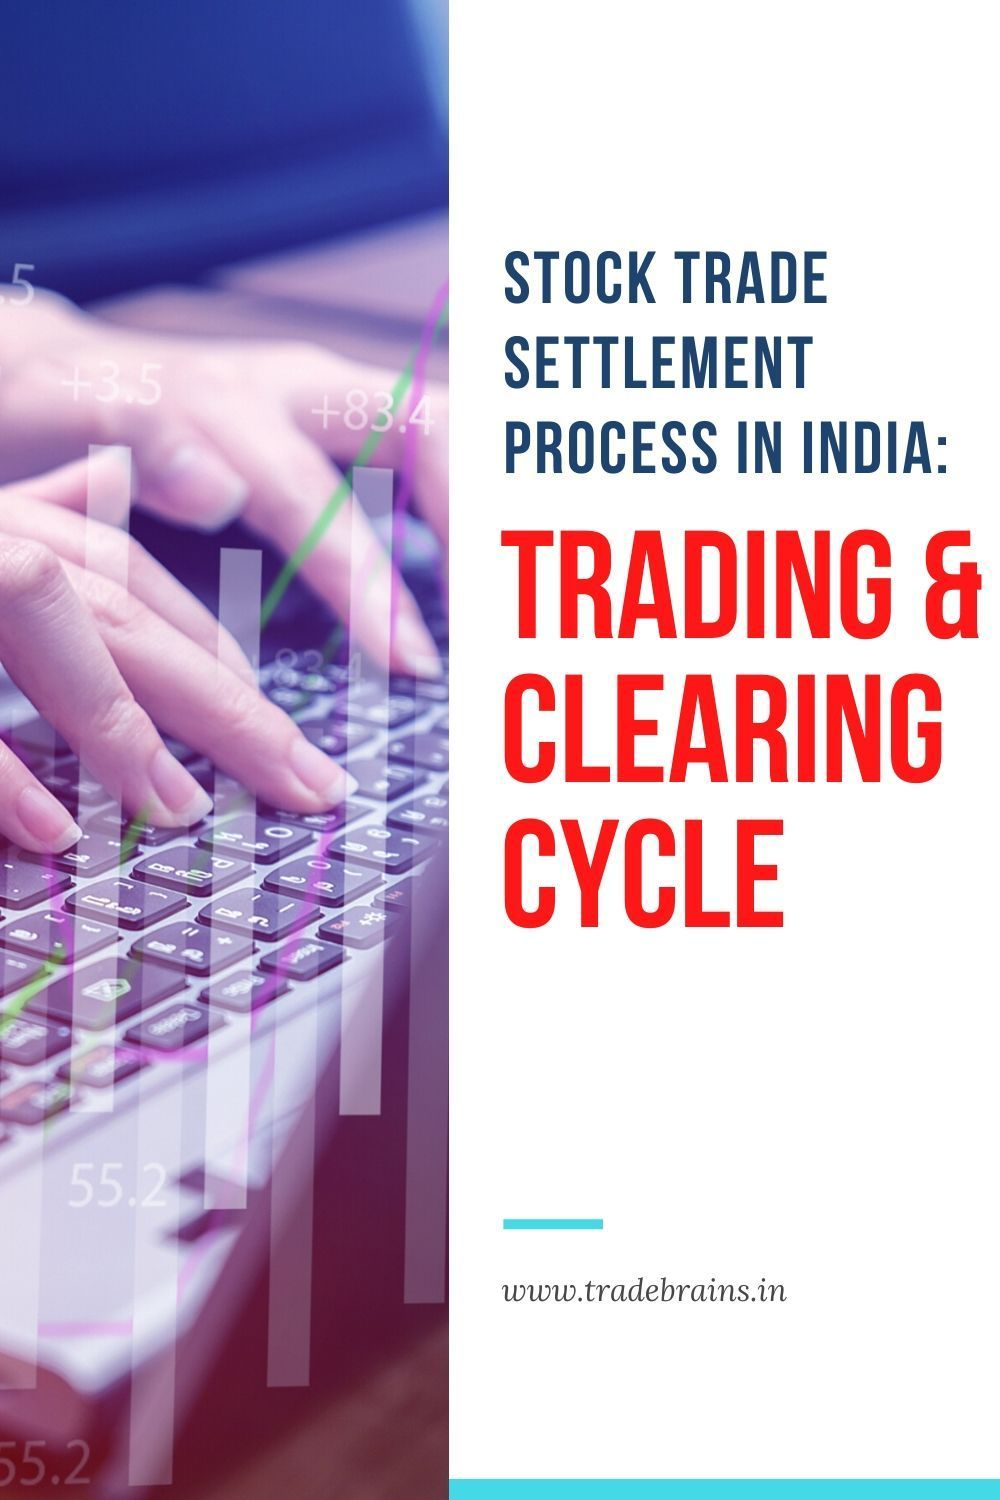 Stock Trade Settlement Process In India Trading Clearing Cycle In 2020 Stock Trading Trading Cycle